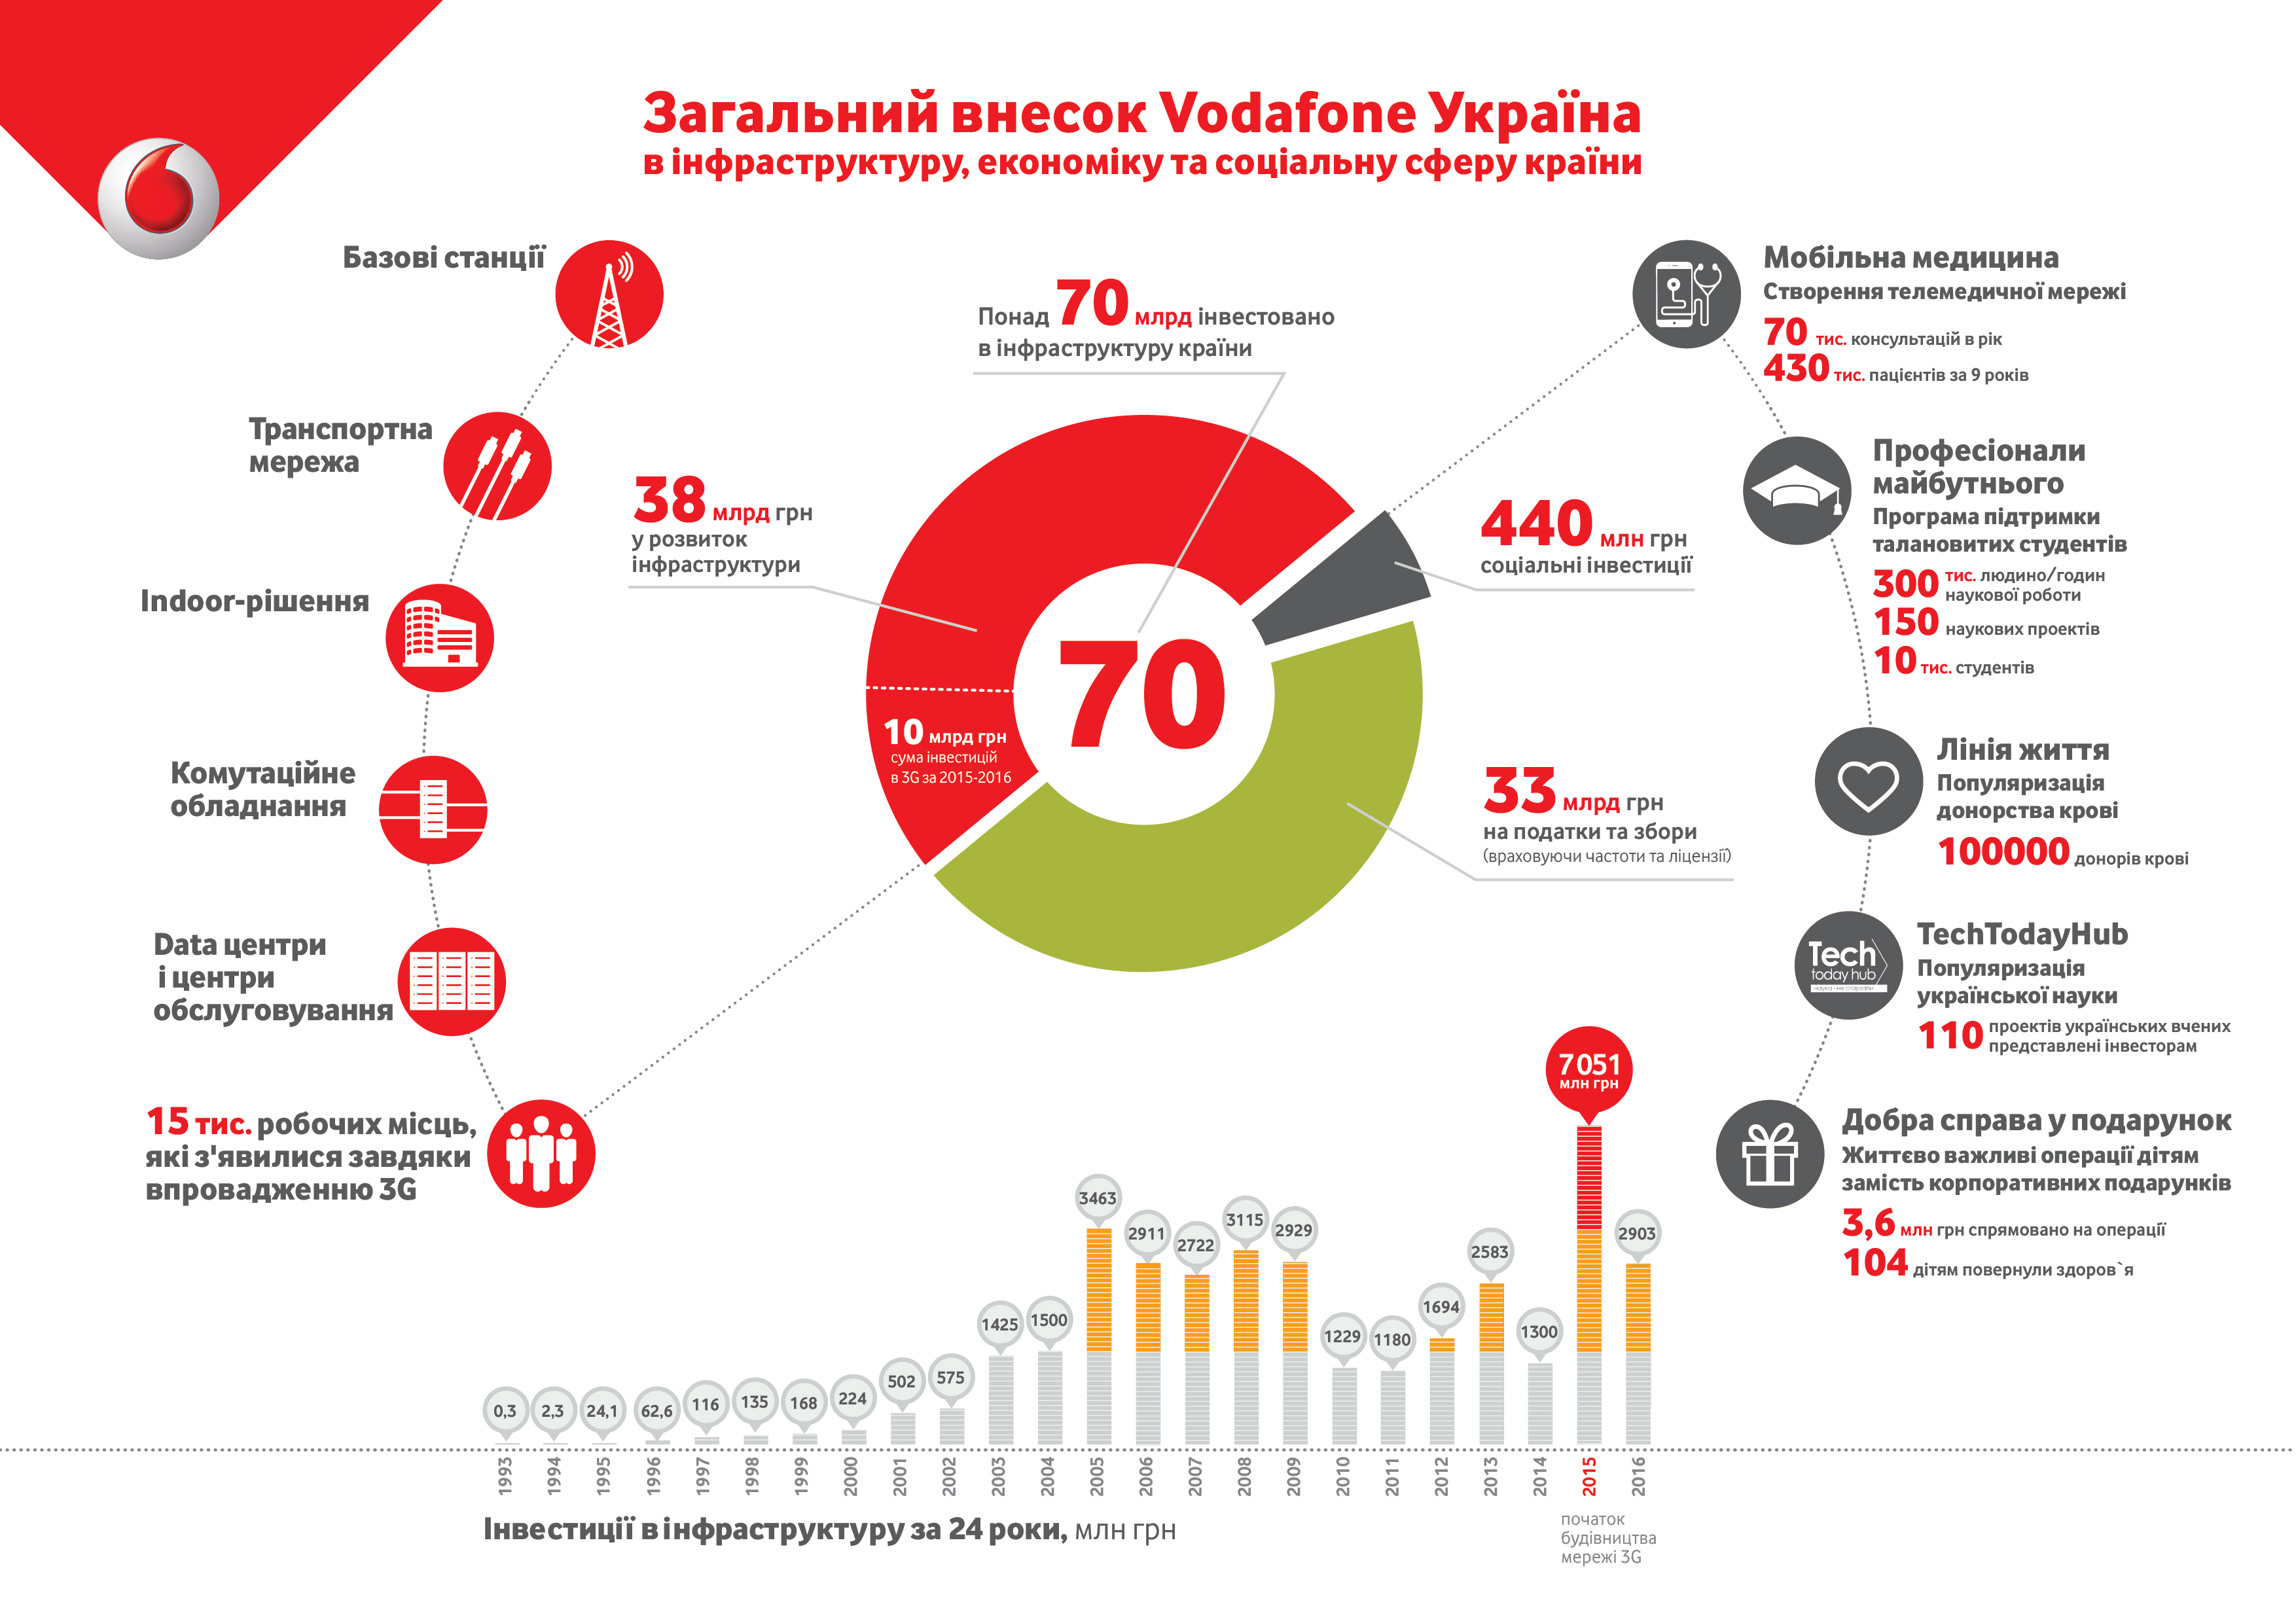 Vodafone investments